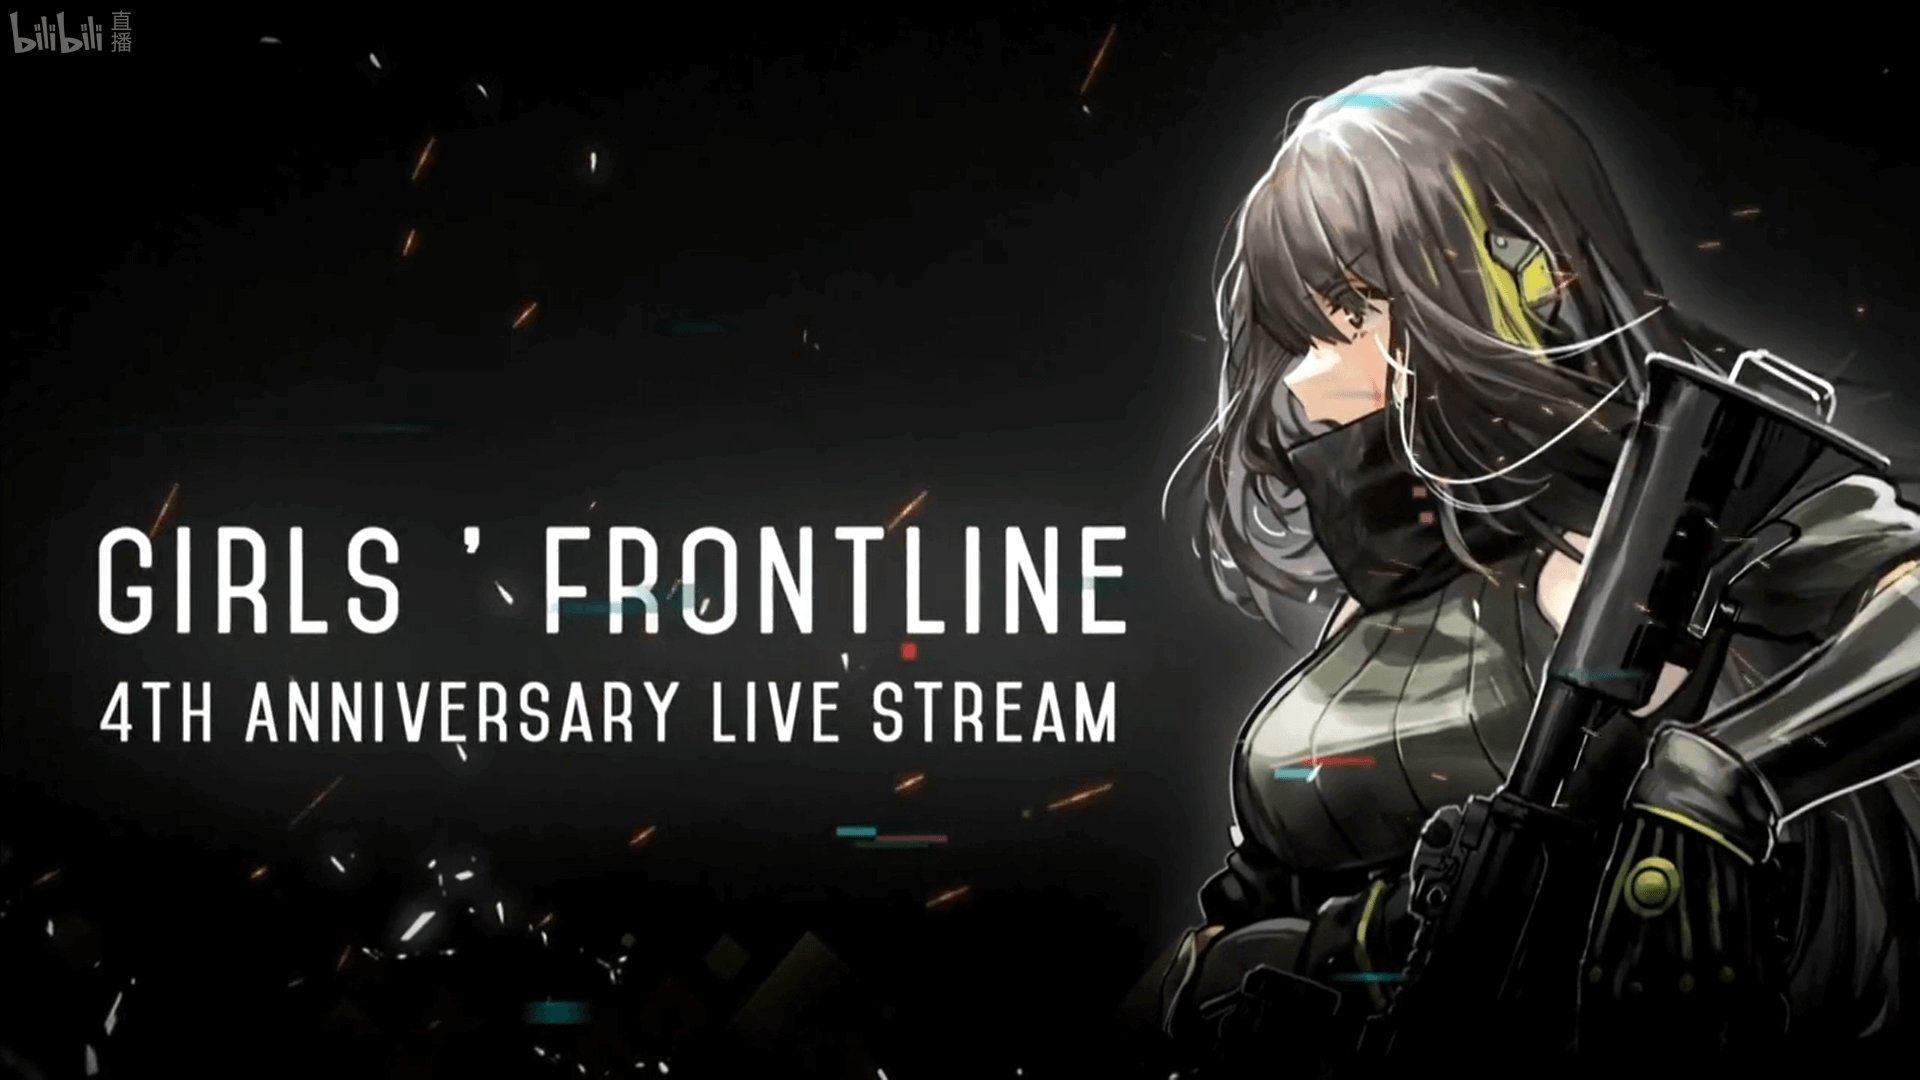 The Girls' Frontline 4th Anniversary Live Stream official cover